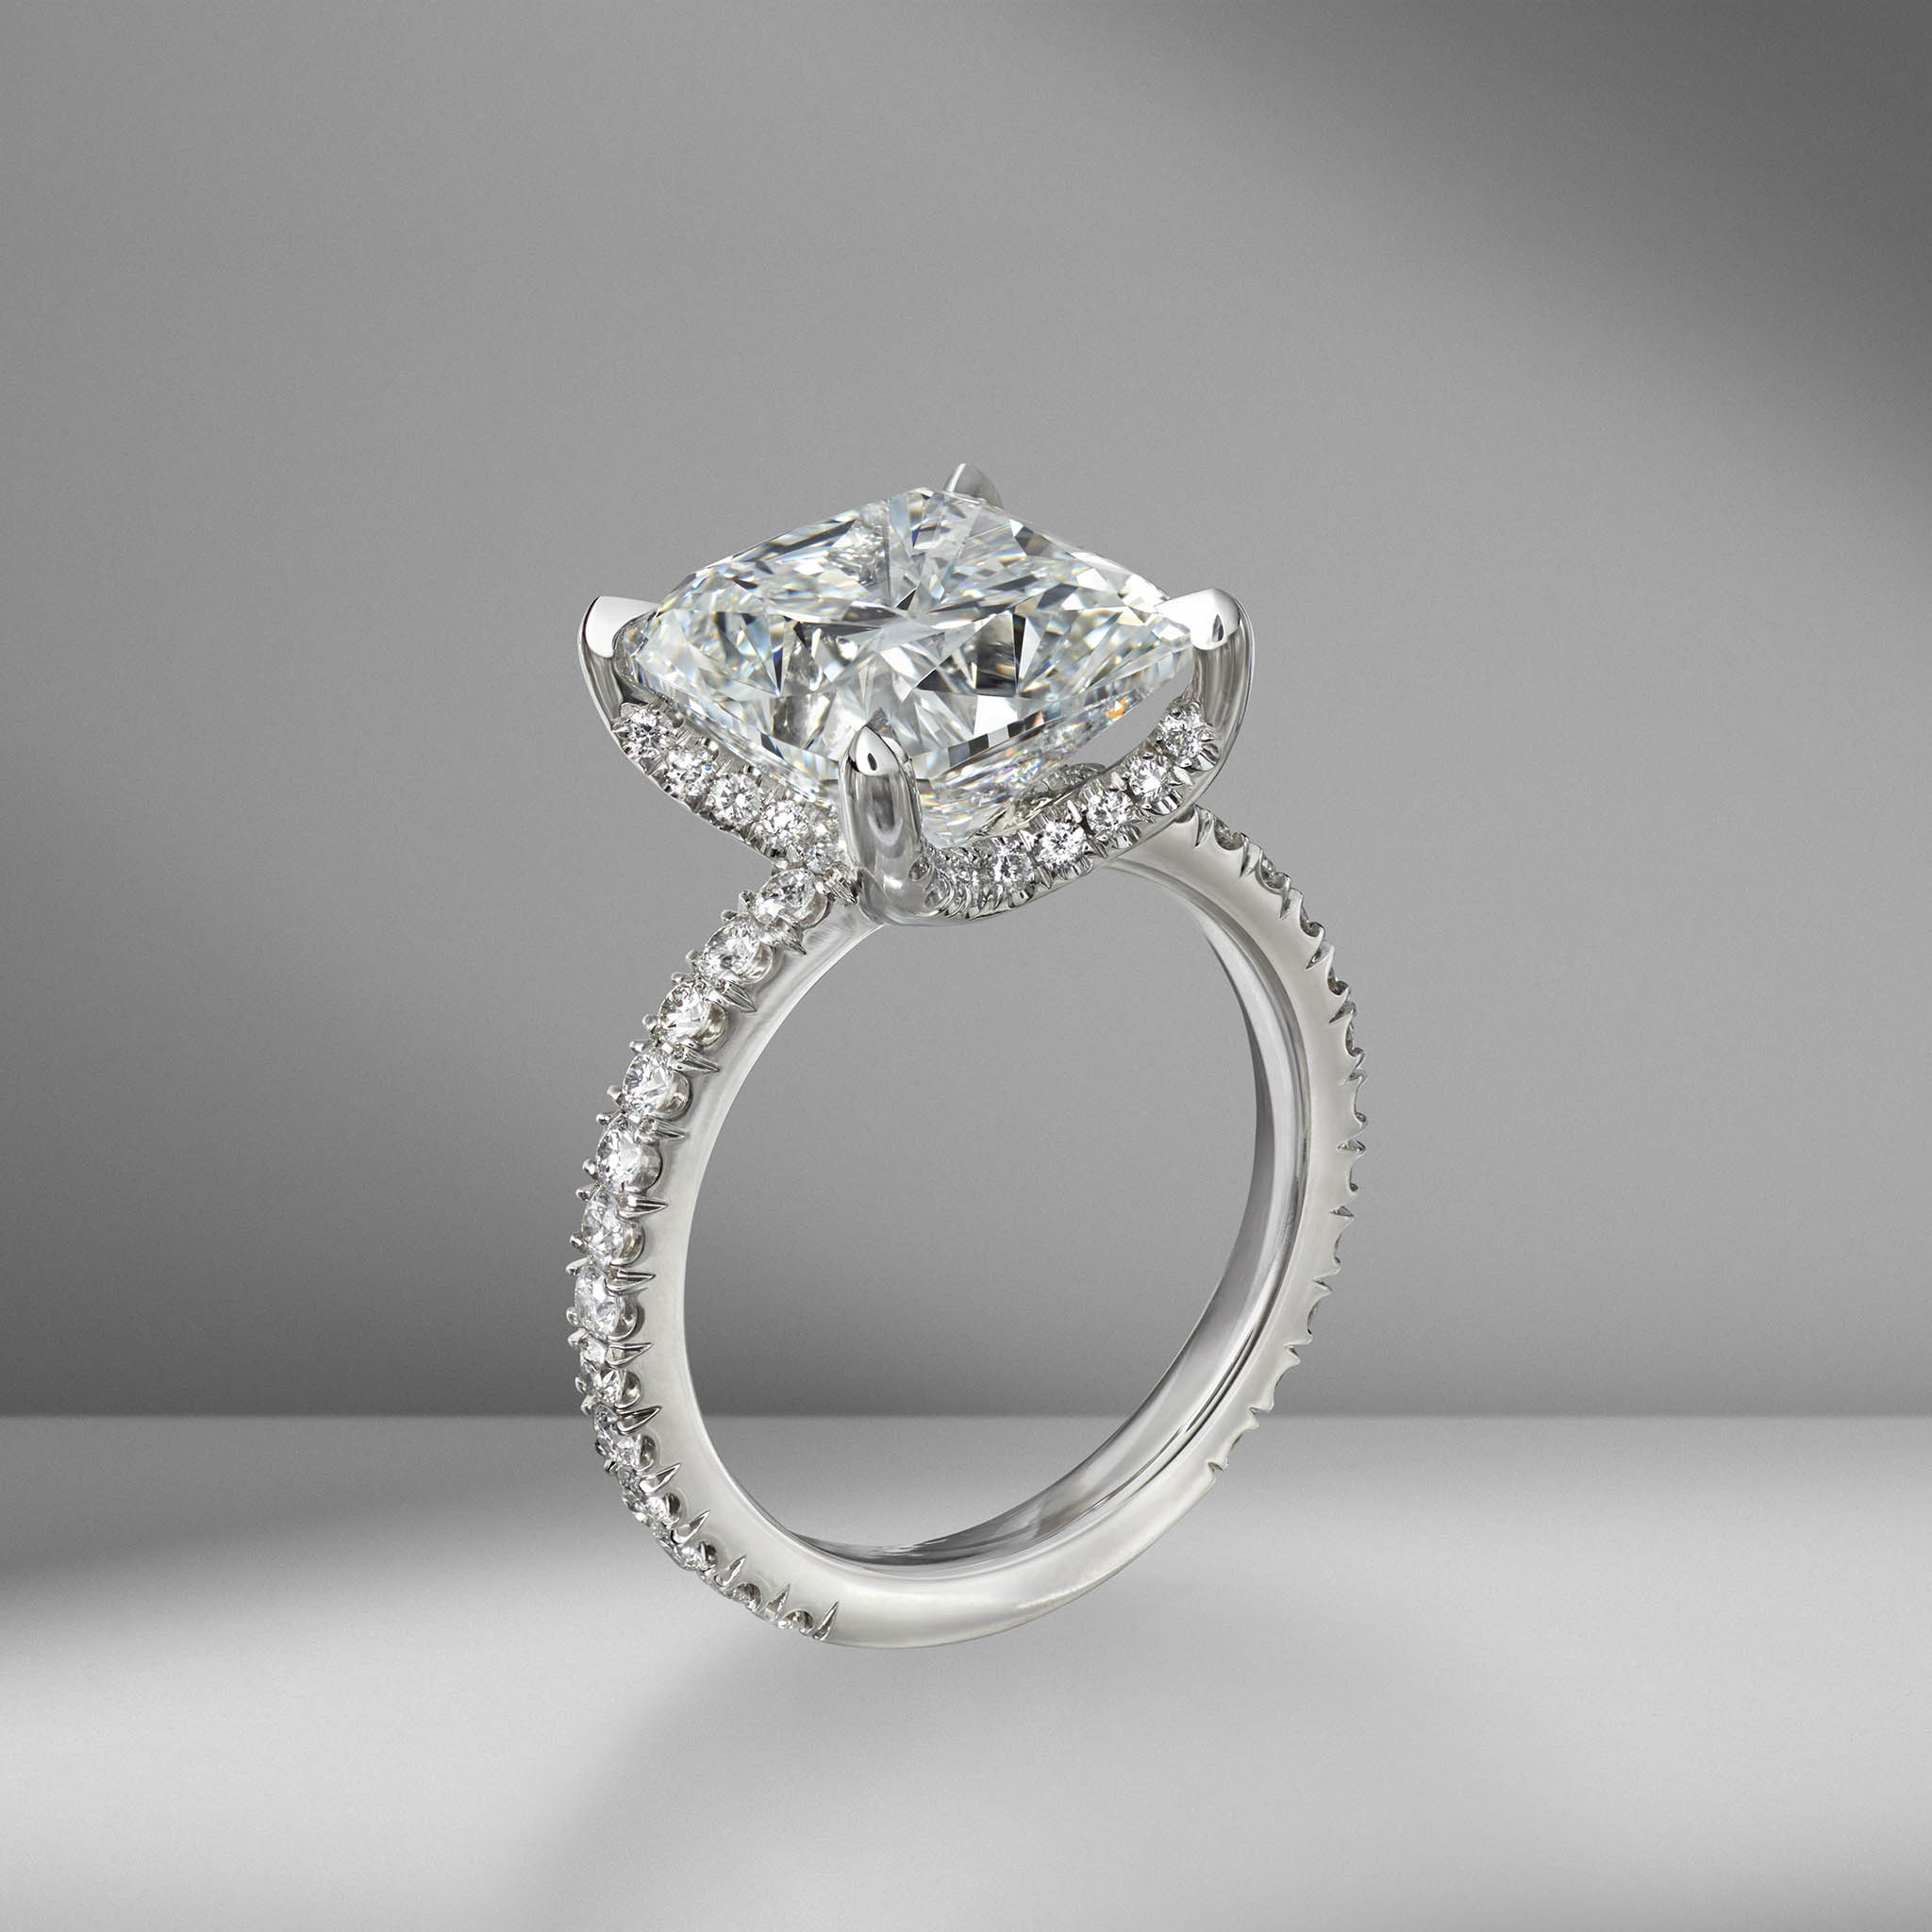 Cushion Cut Engagement Ring with Diamond Pav